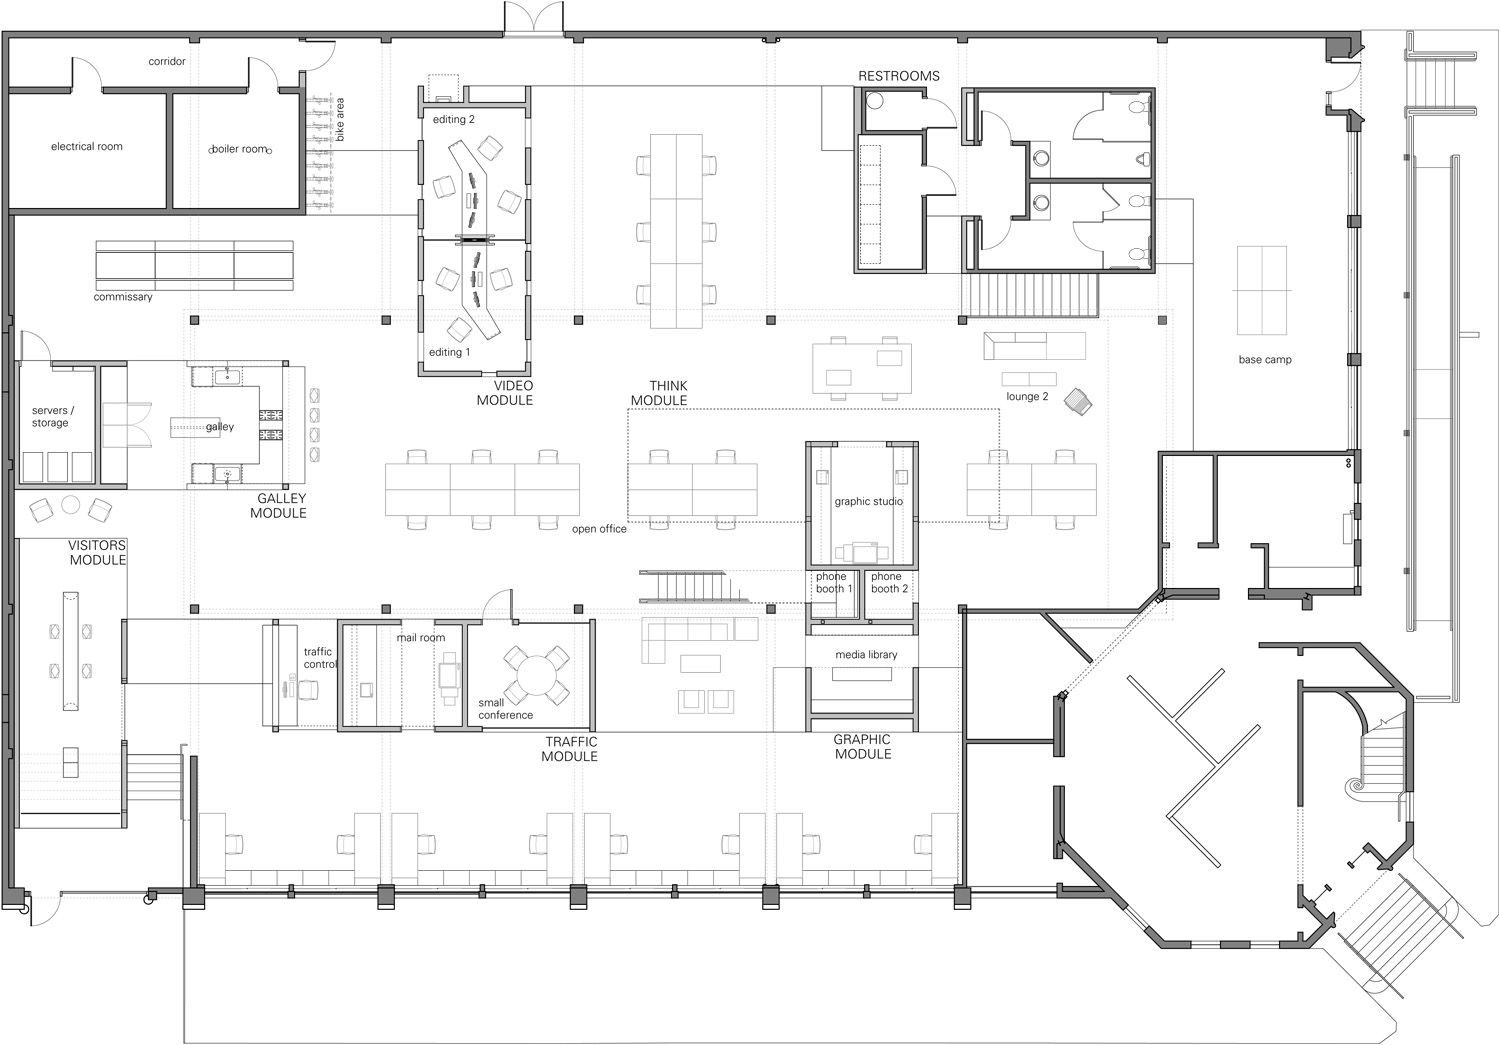 North skylab architecture office floor plan office for Small commercial building plans